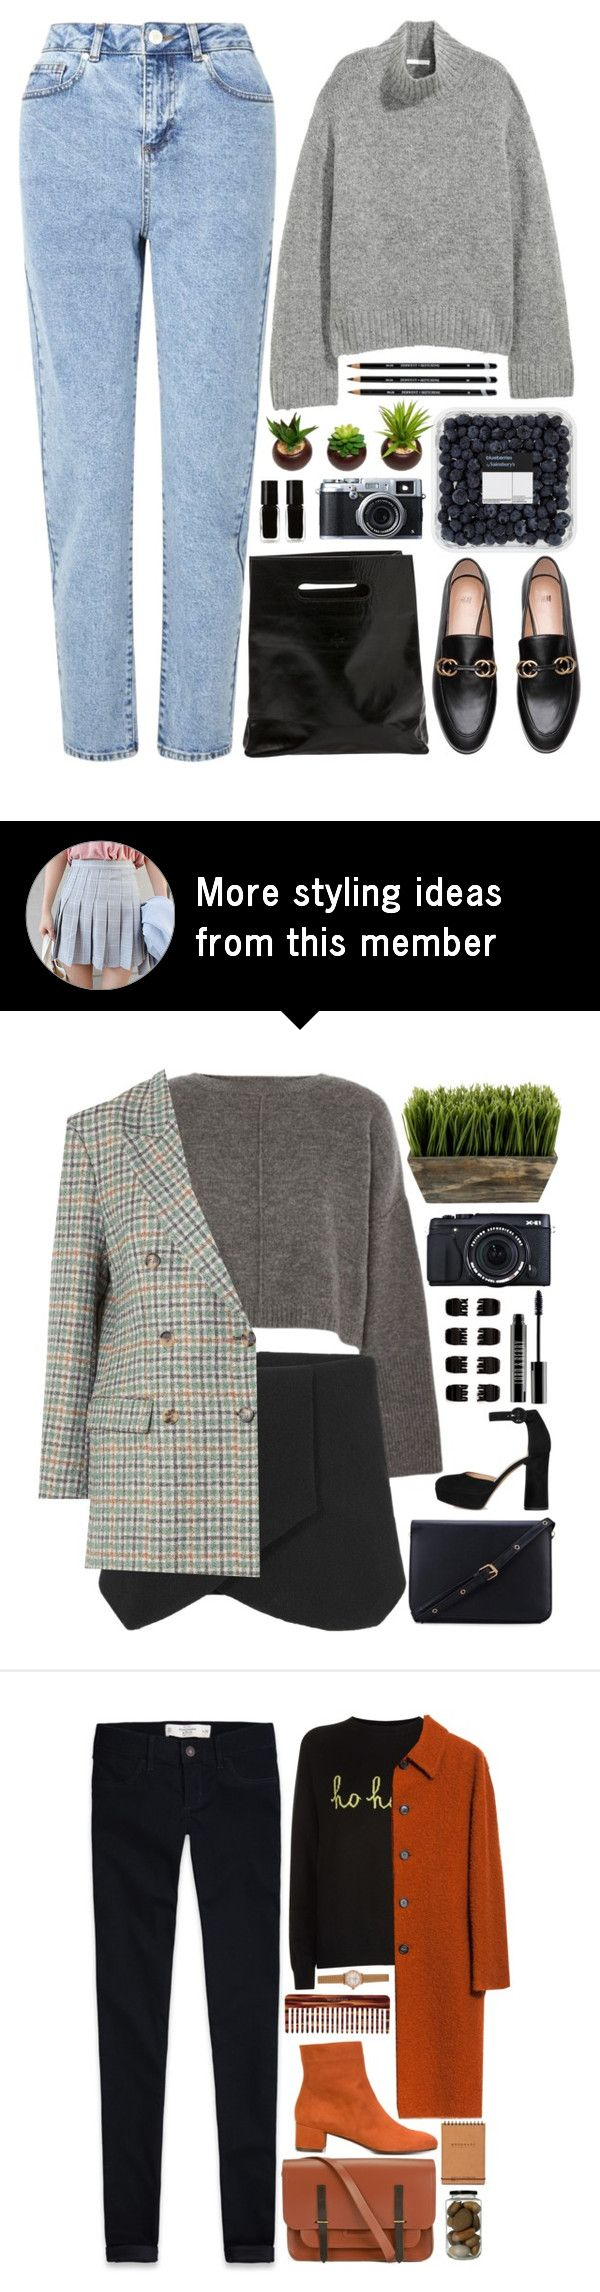 """""""The Legend of the Blue Sea"""" by annaclaraalvez on Polyvore featuring H&M, Miss Selfridge, Marie Turnor, The New Black and Fujifilm"""